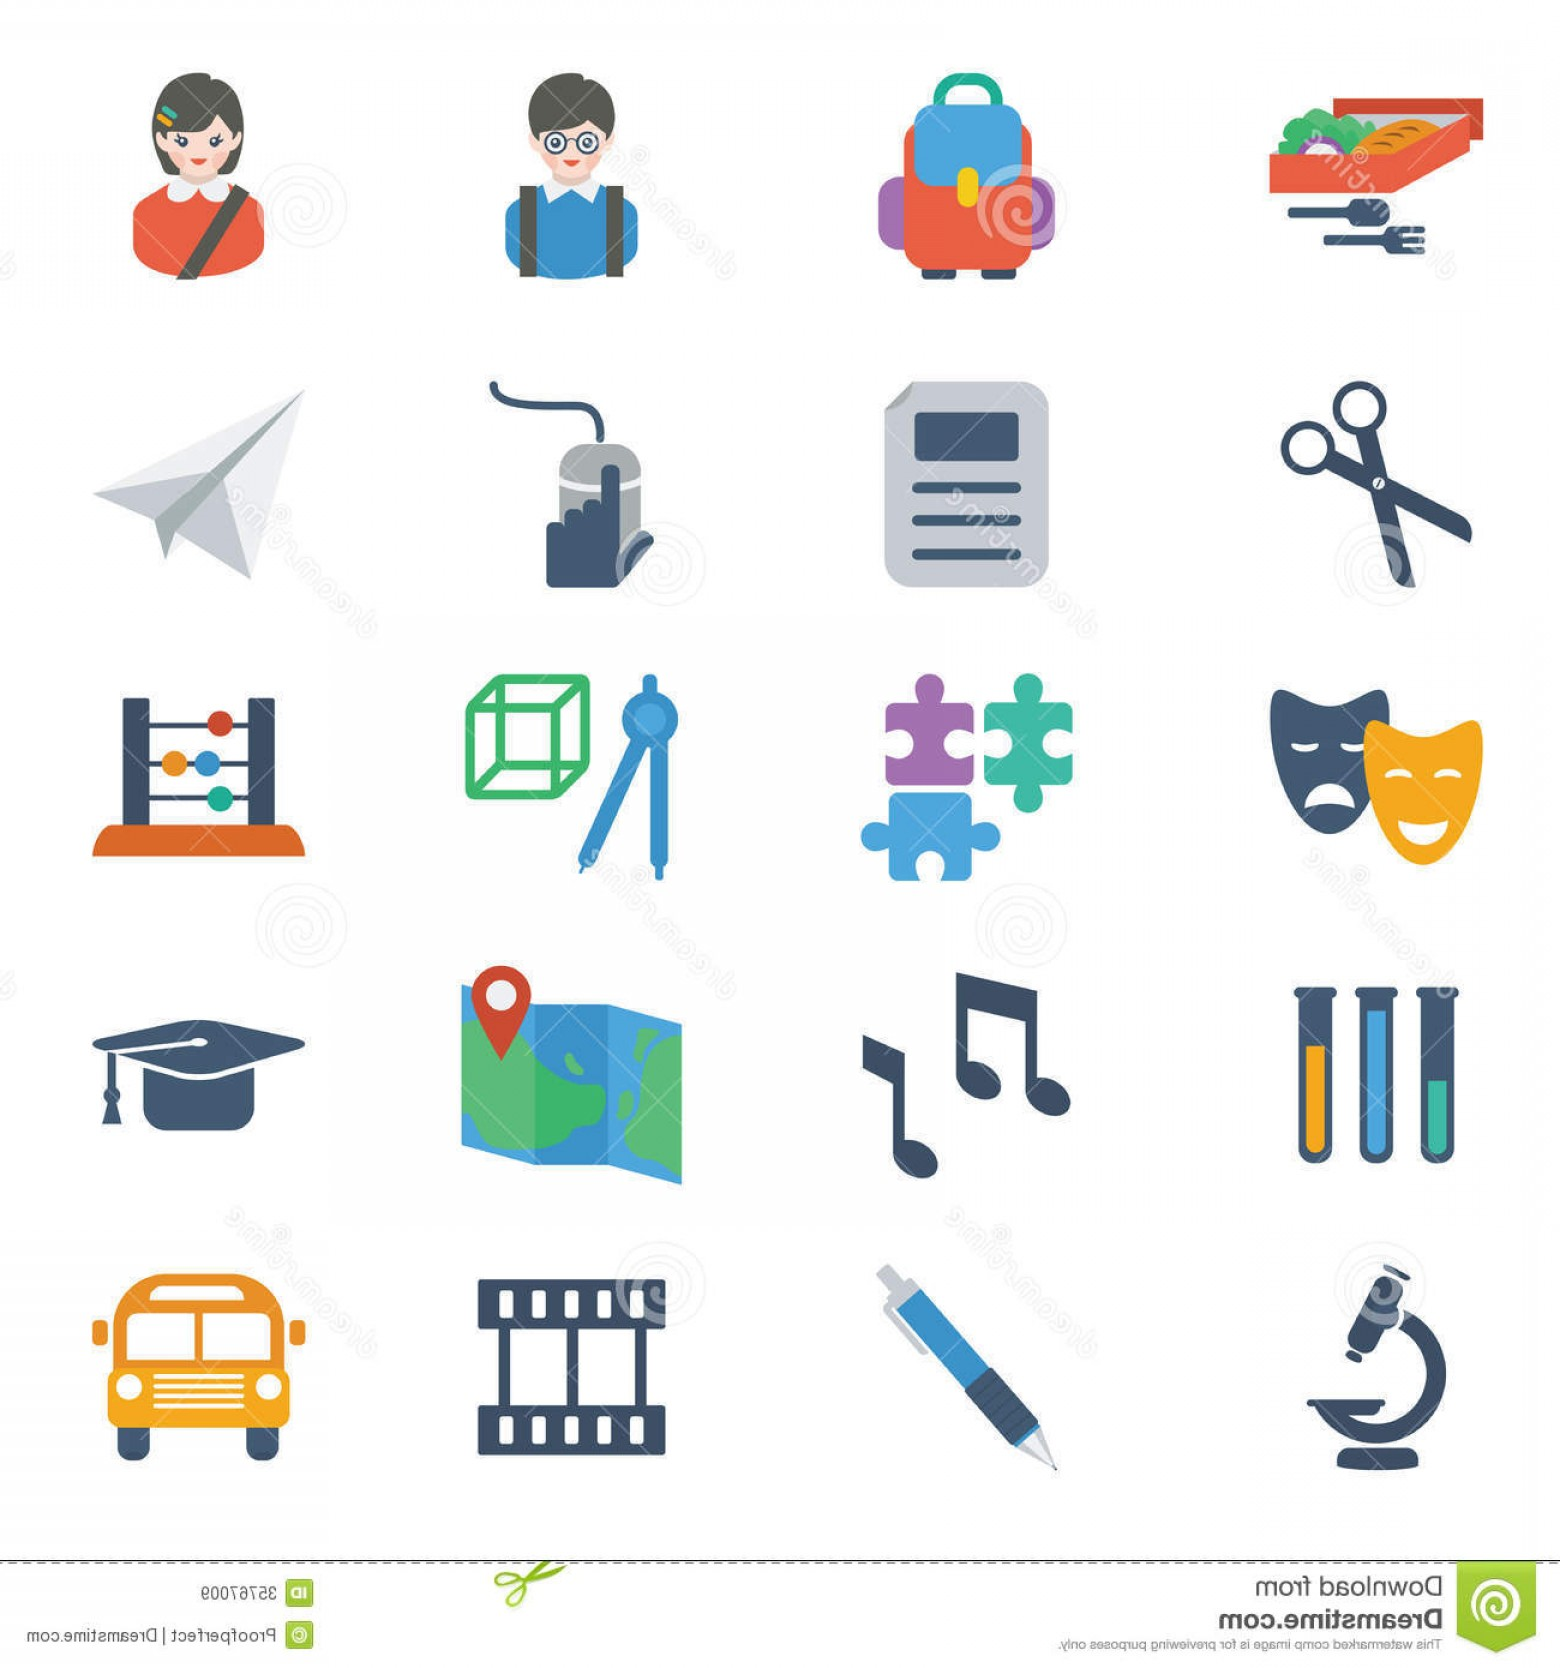 Free Vector Flat Education Icons: Royalty Free Stock Images School Education Icons Set Modern Colorful Flat Style Vector Theme Image